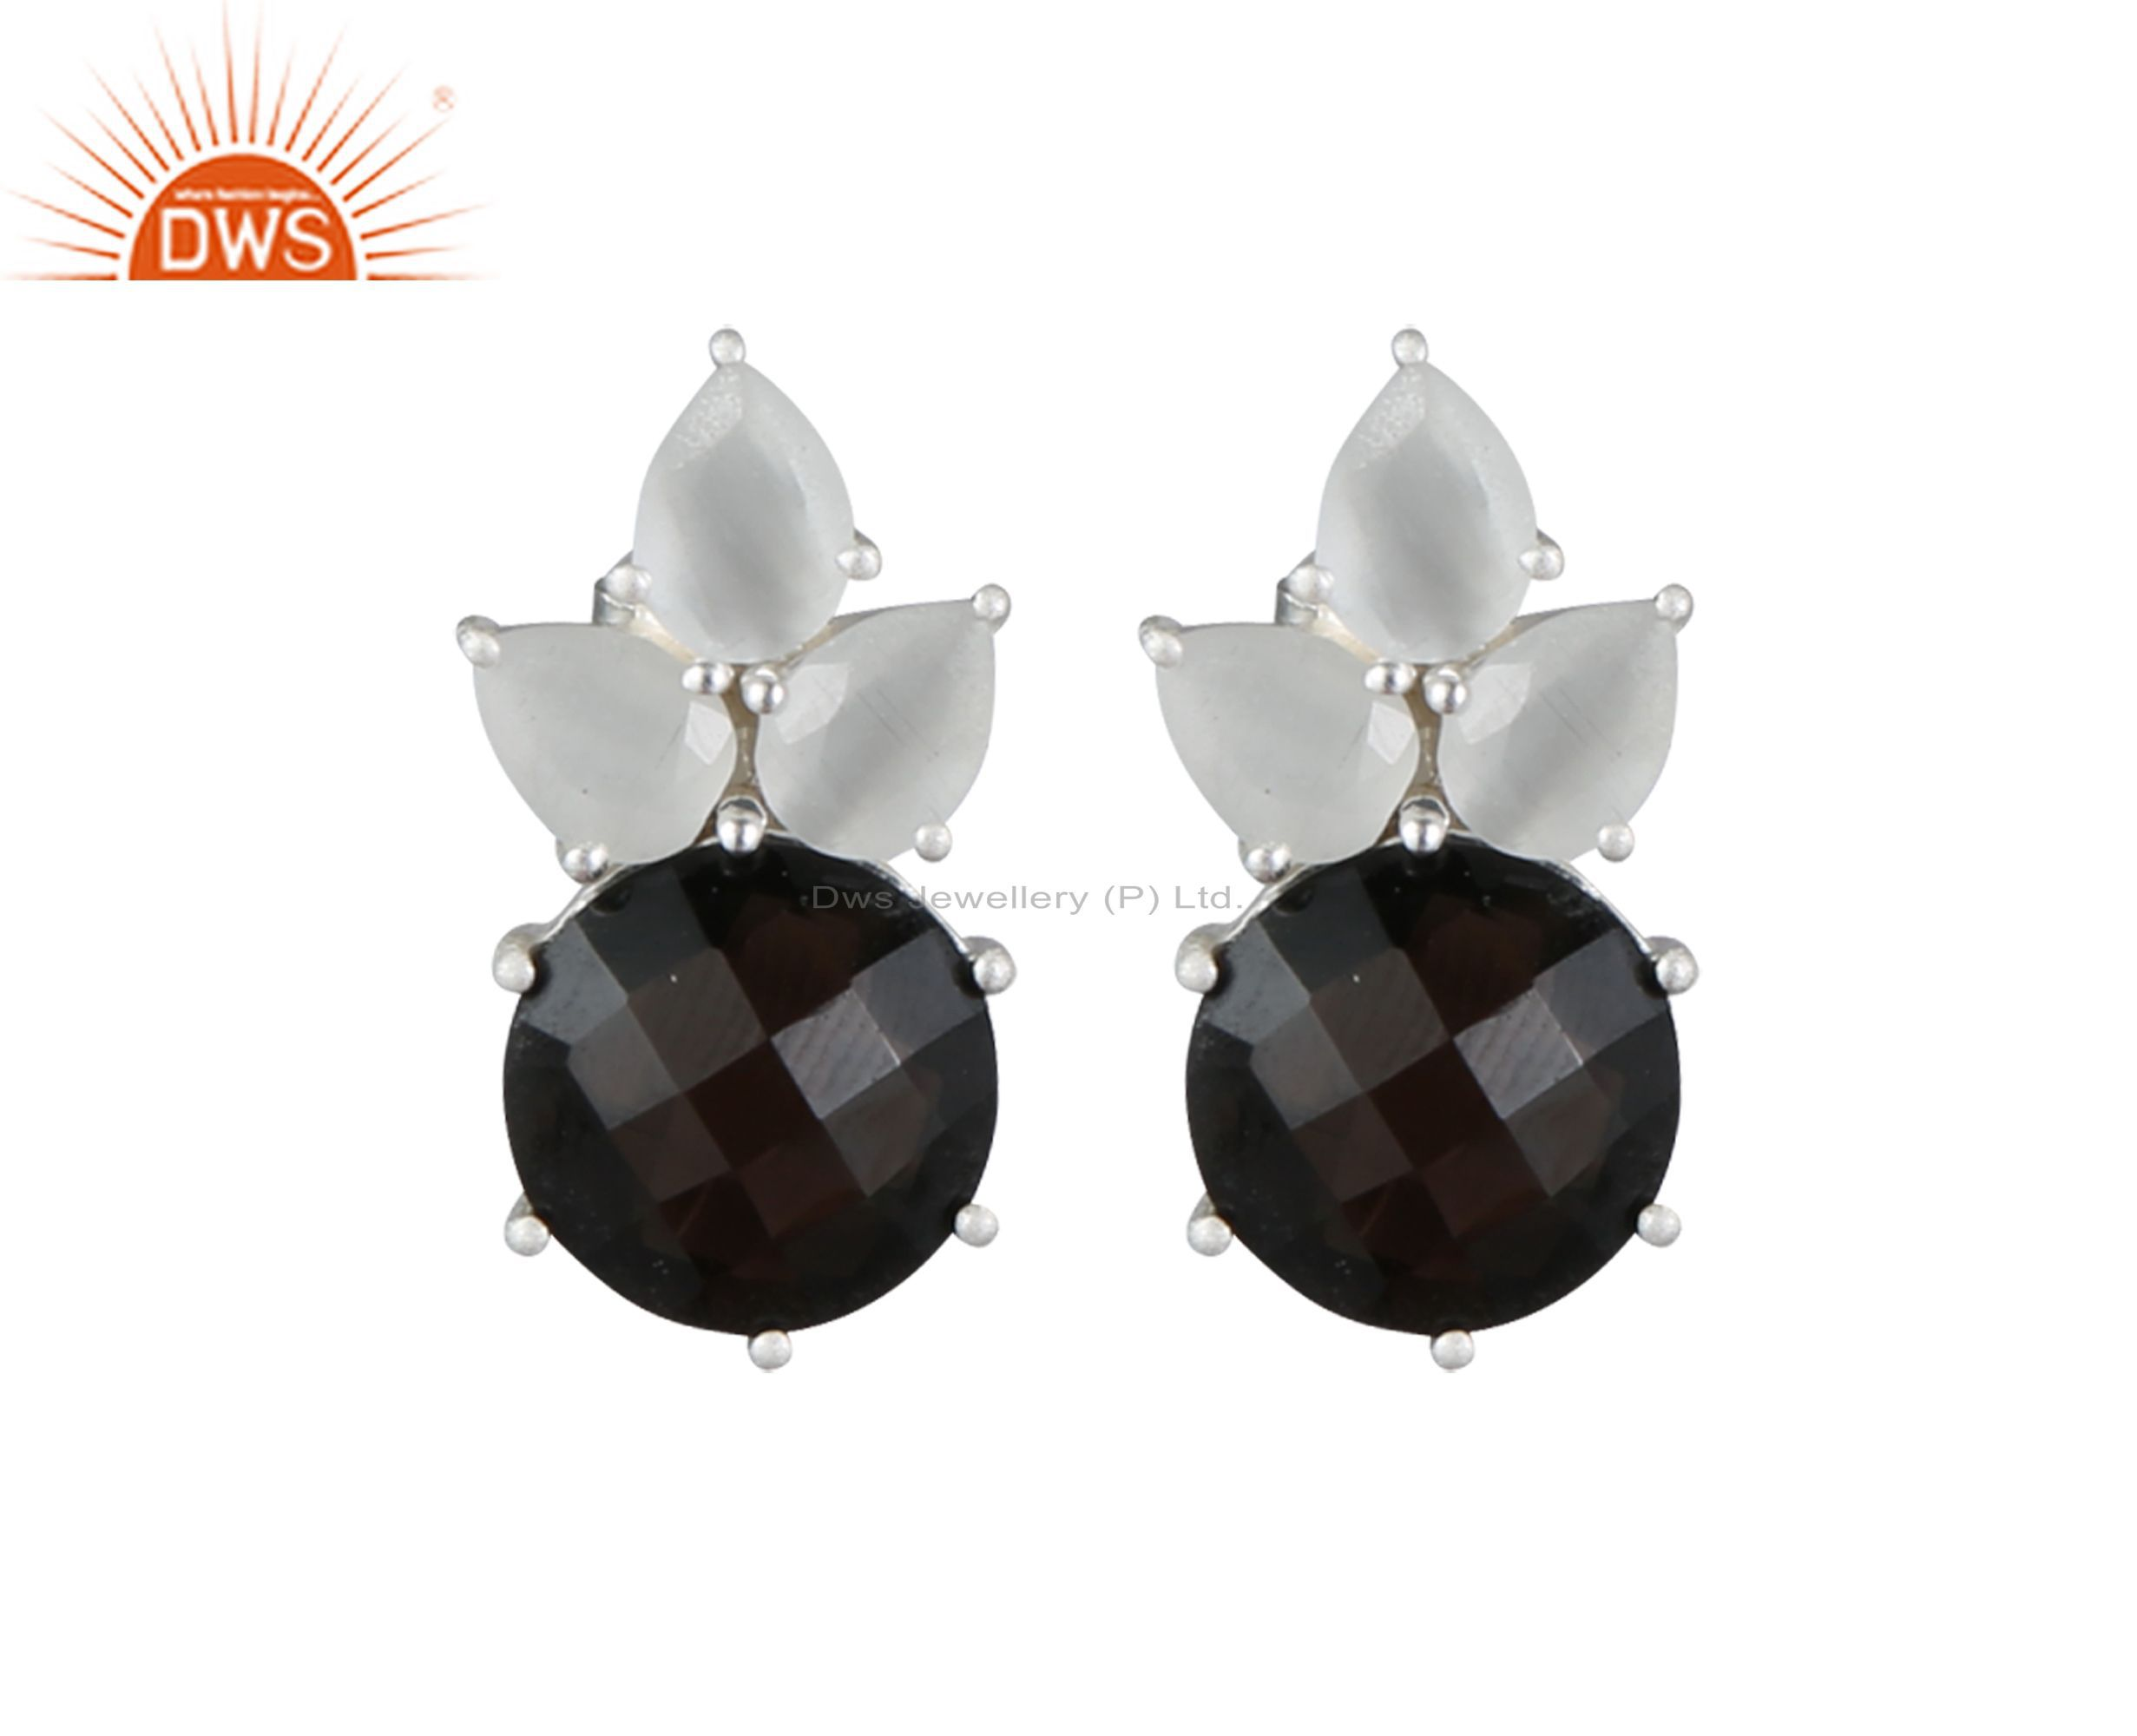 White Moonstone And Smoky Quartz Cluster Post Stud Earrings Made In Silver 925